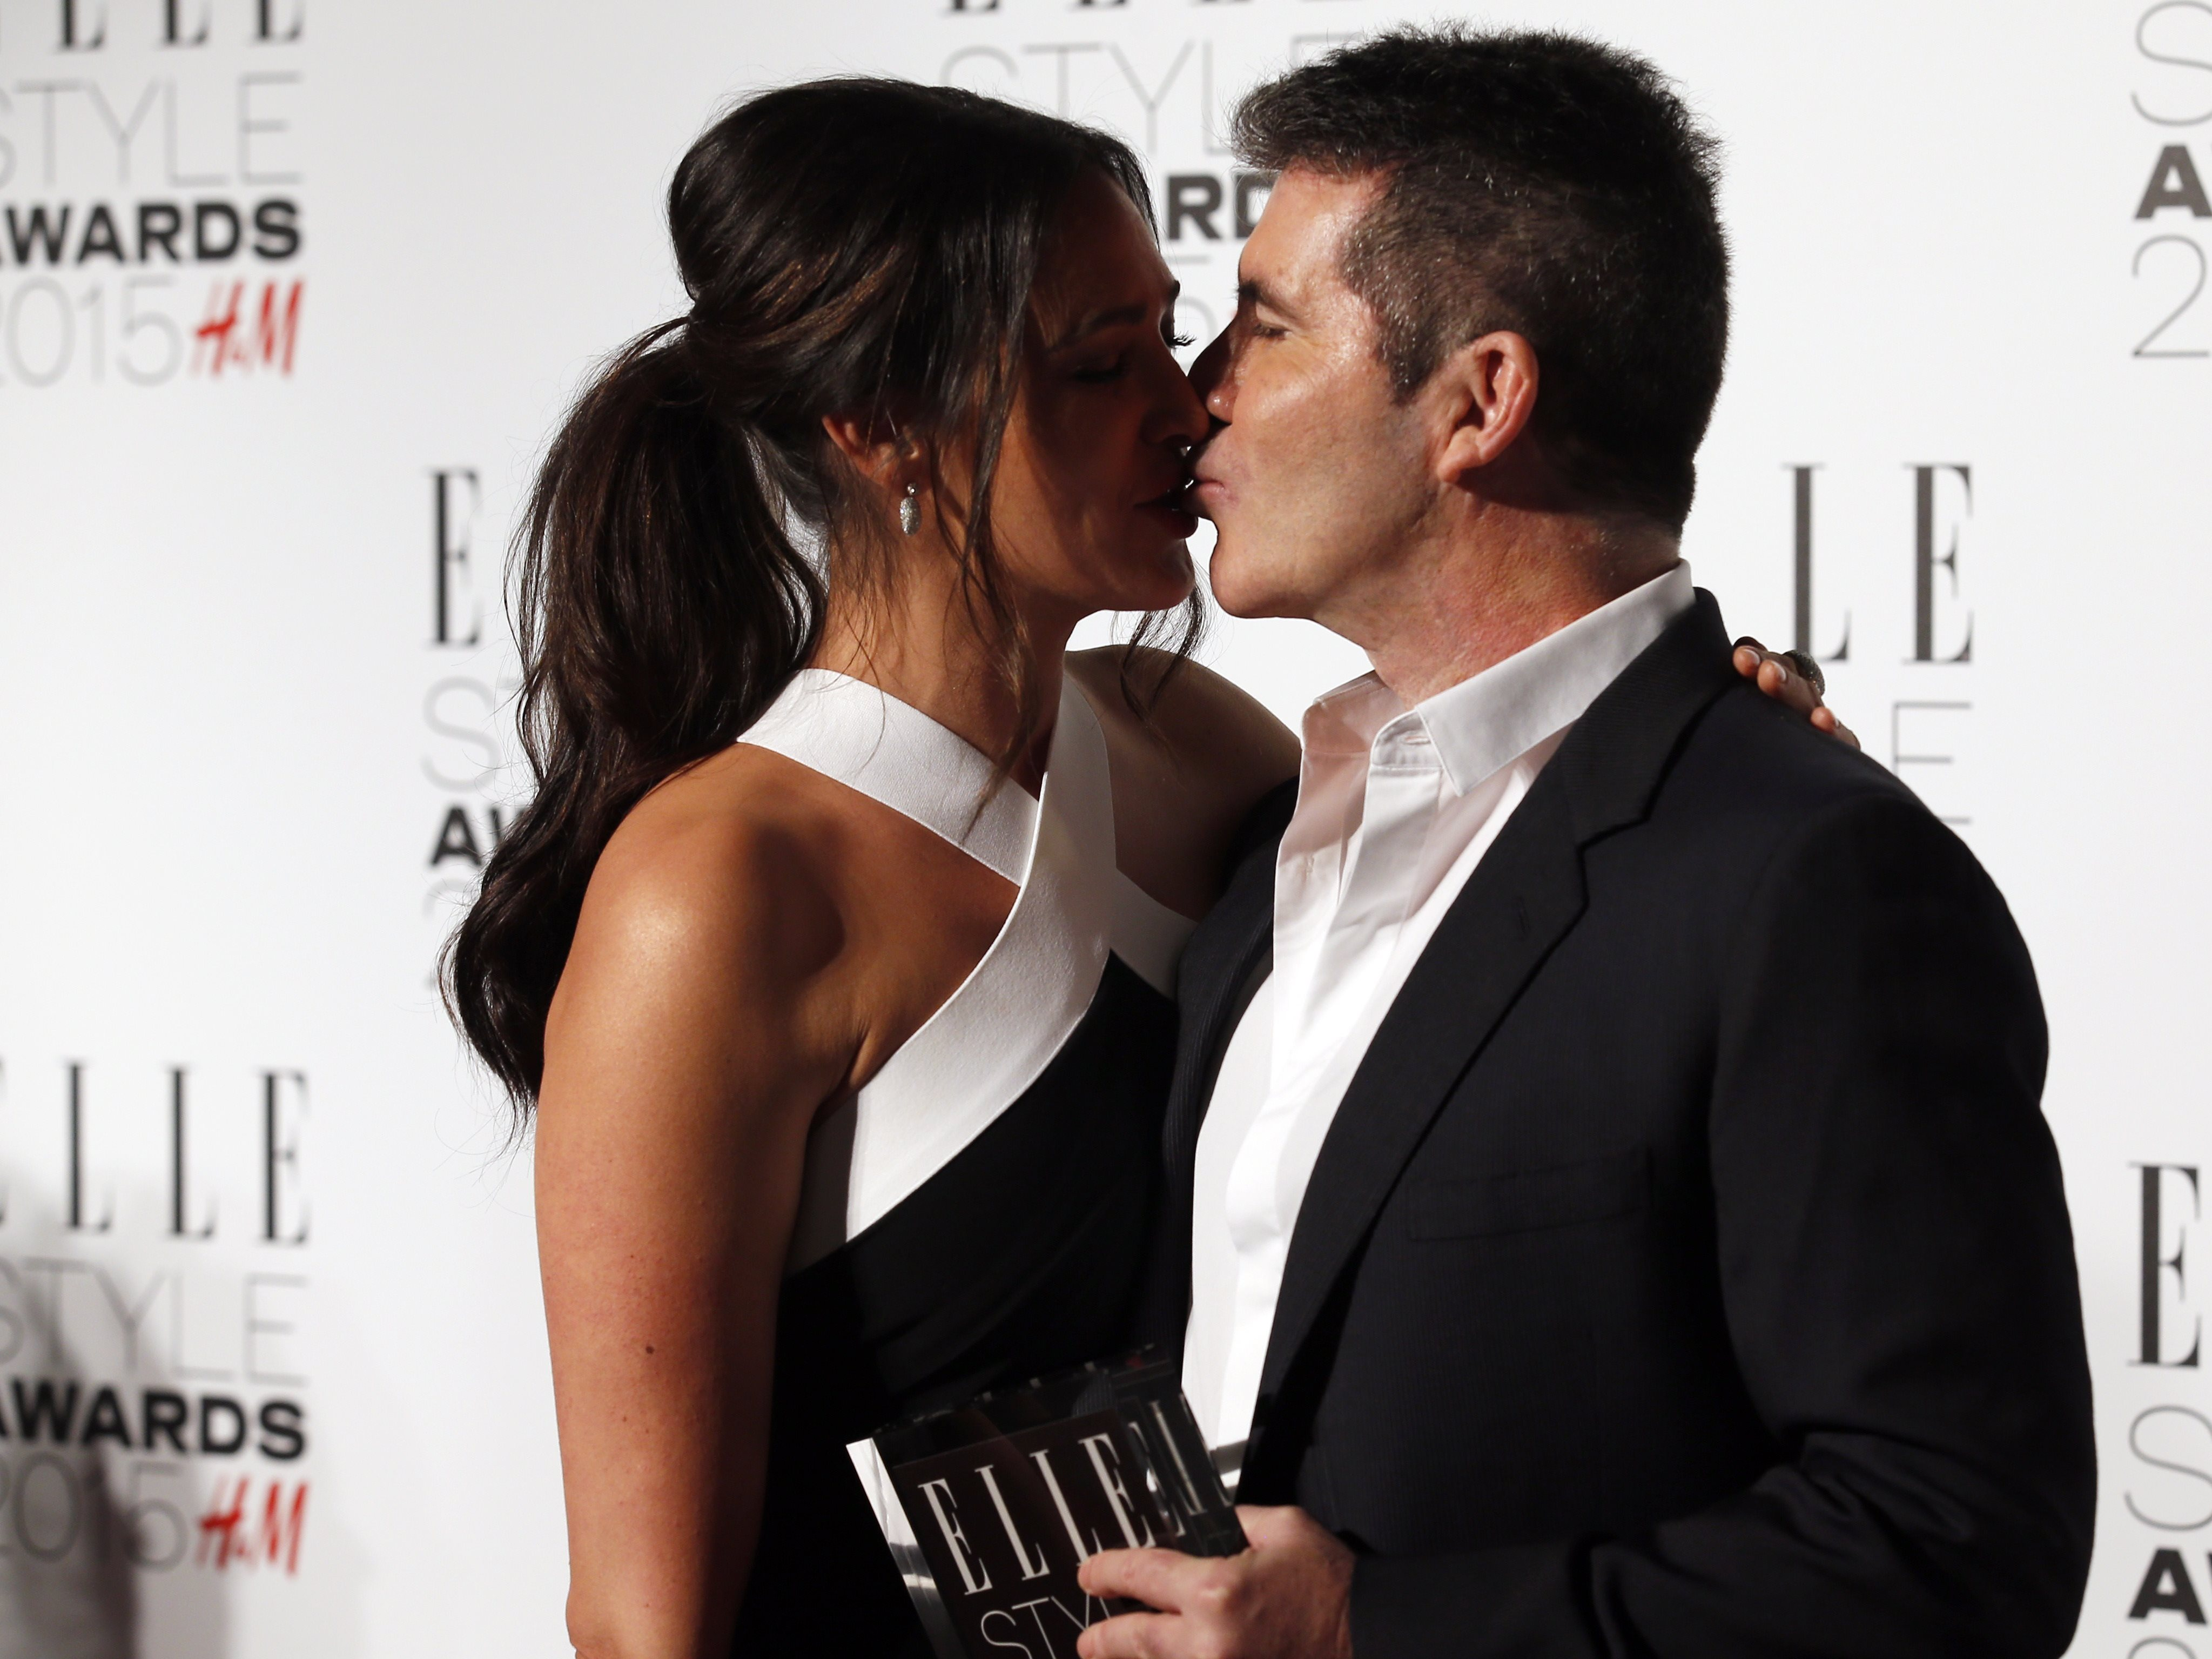 Simon Cowell might have to soon kiss goodbye to one of his acts